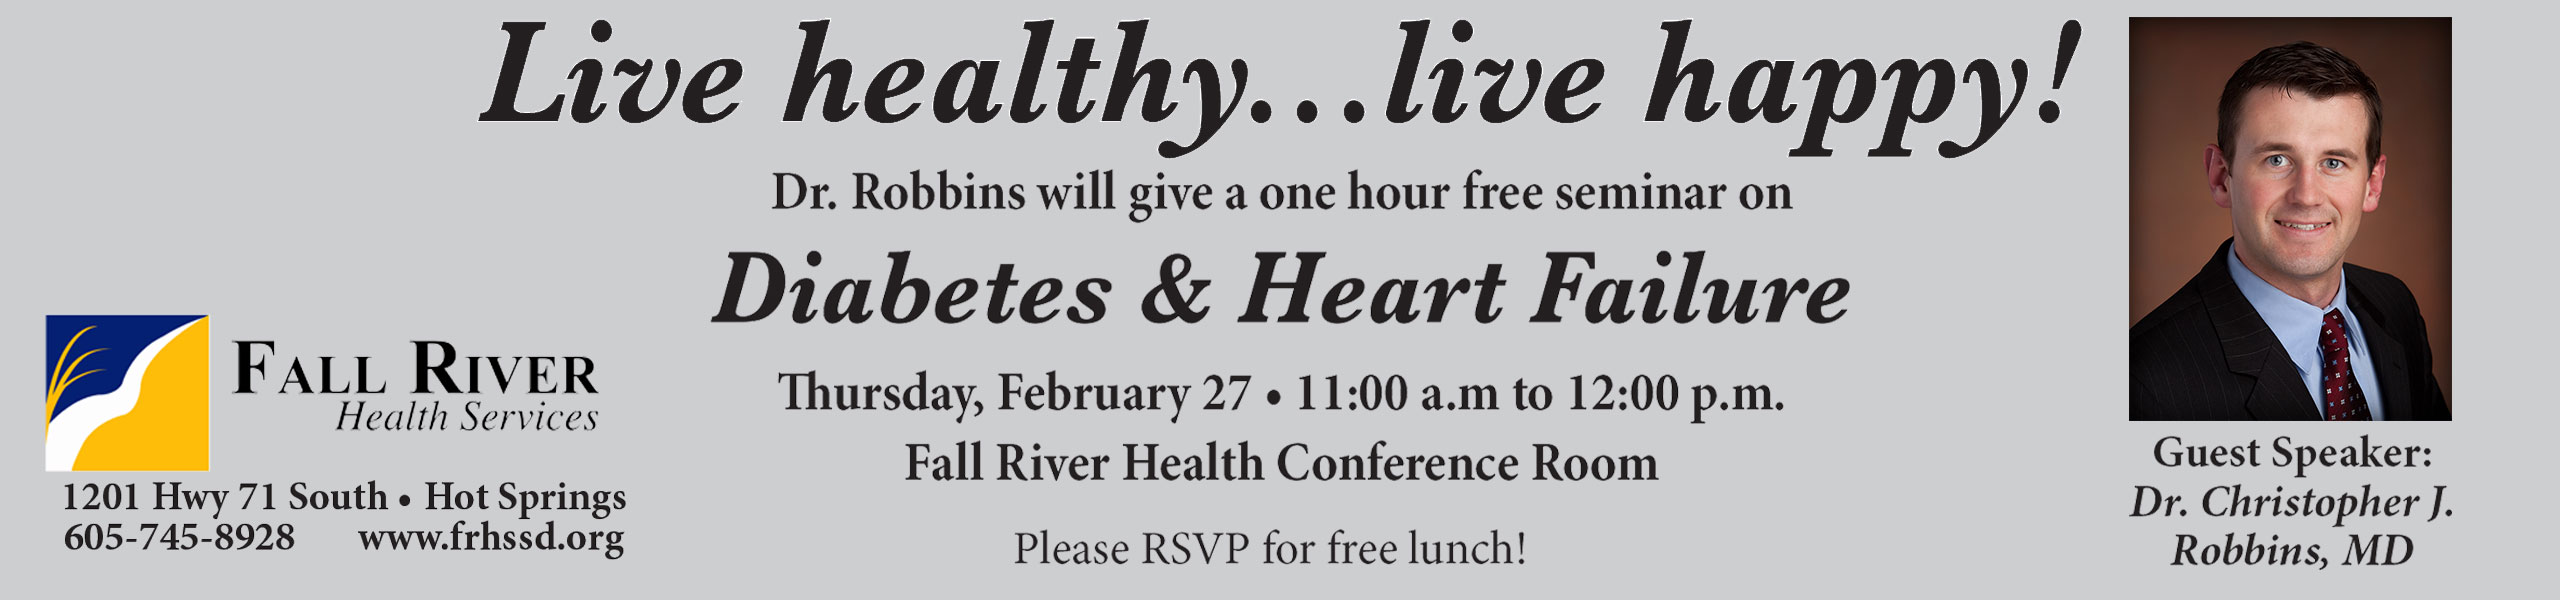 Live Healthy... Live Happy! Dr. Robbins will give a one hour free seminar on Diabetes & Heart Failure Thursday, February 27 11a.m. to 12:00p.m.  Fall River Health Conference Room  Please RSVP for free lunch!  Fall River Health Services 1201 Hwy 71 South - Hot Springs  605-745-8928  www.frhssd.org  Pictured is Guest Speaker Dr. Christopher J. Robbins, MD